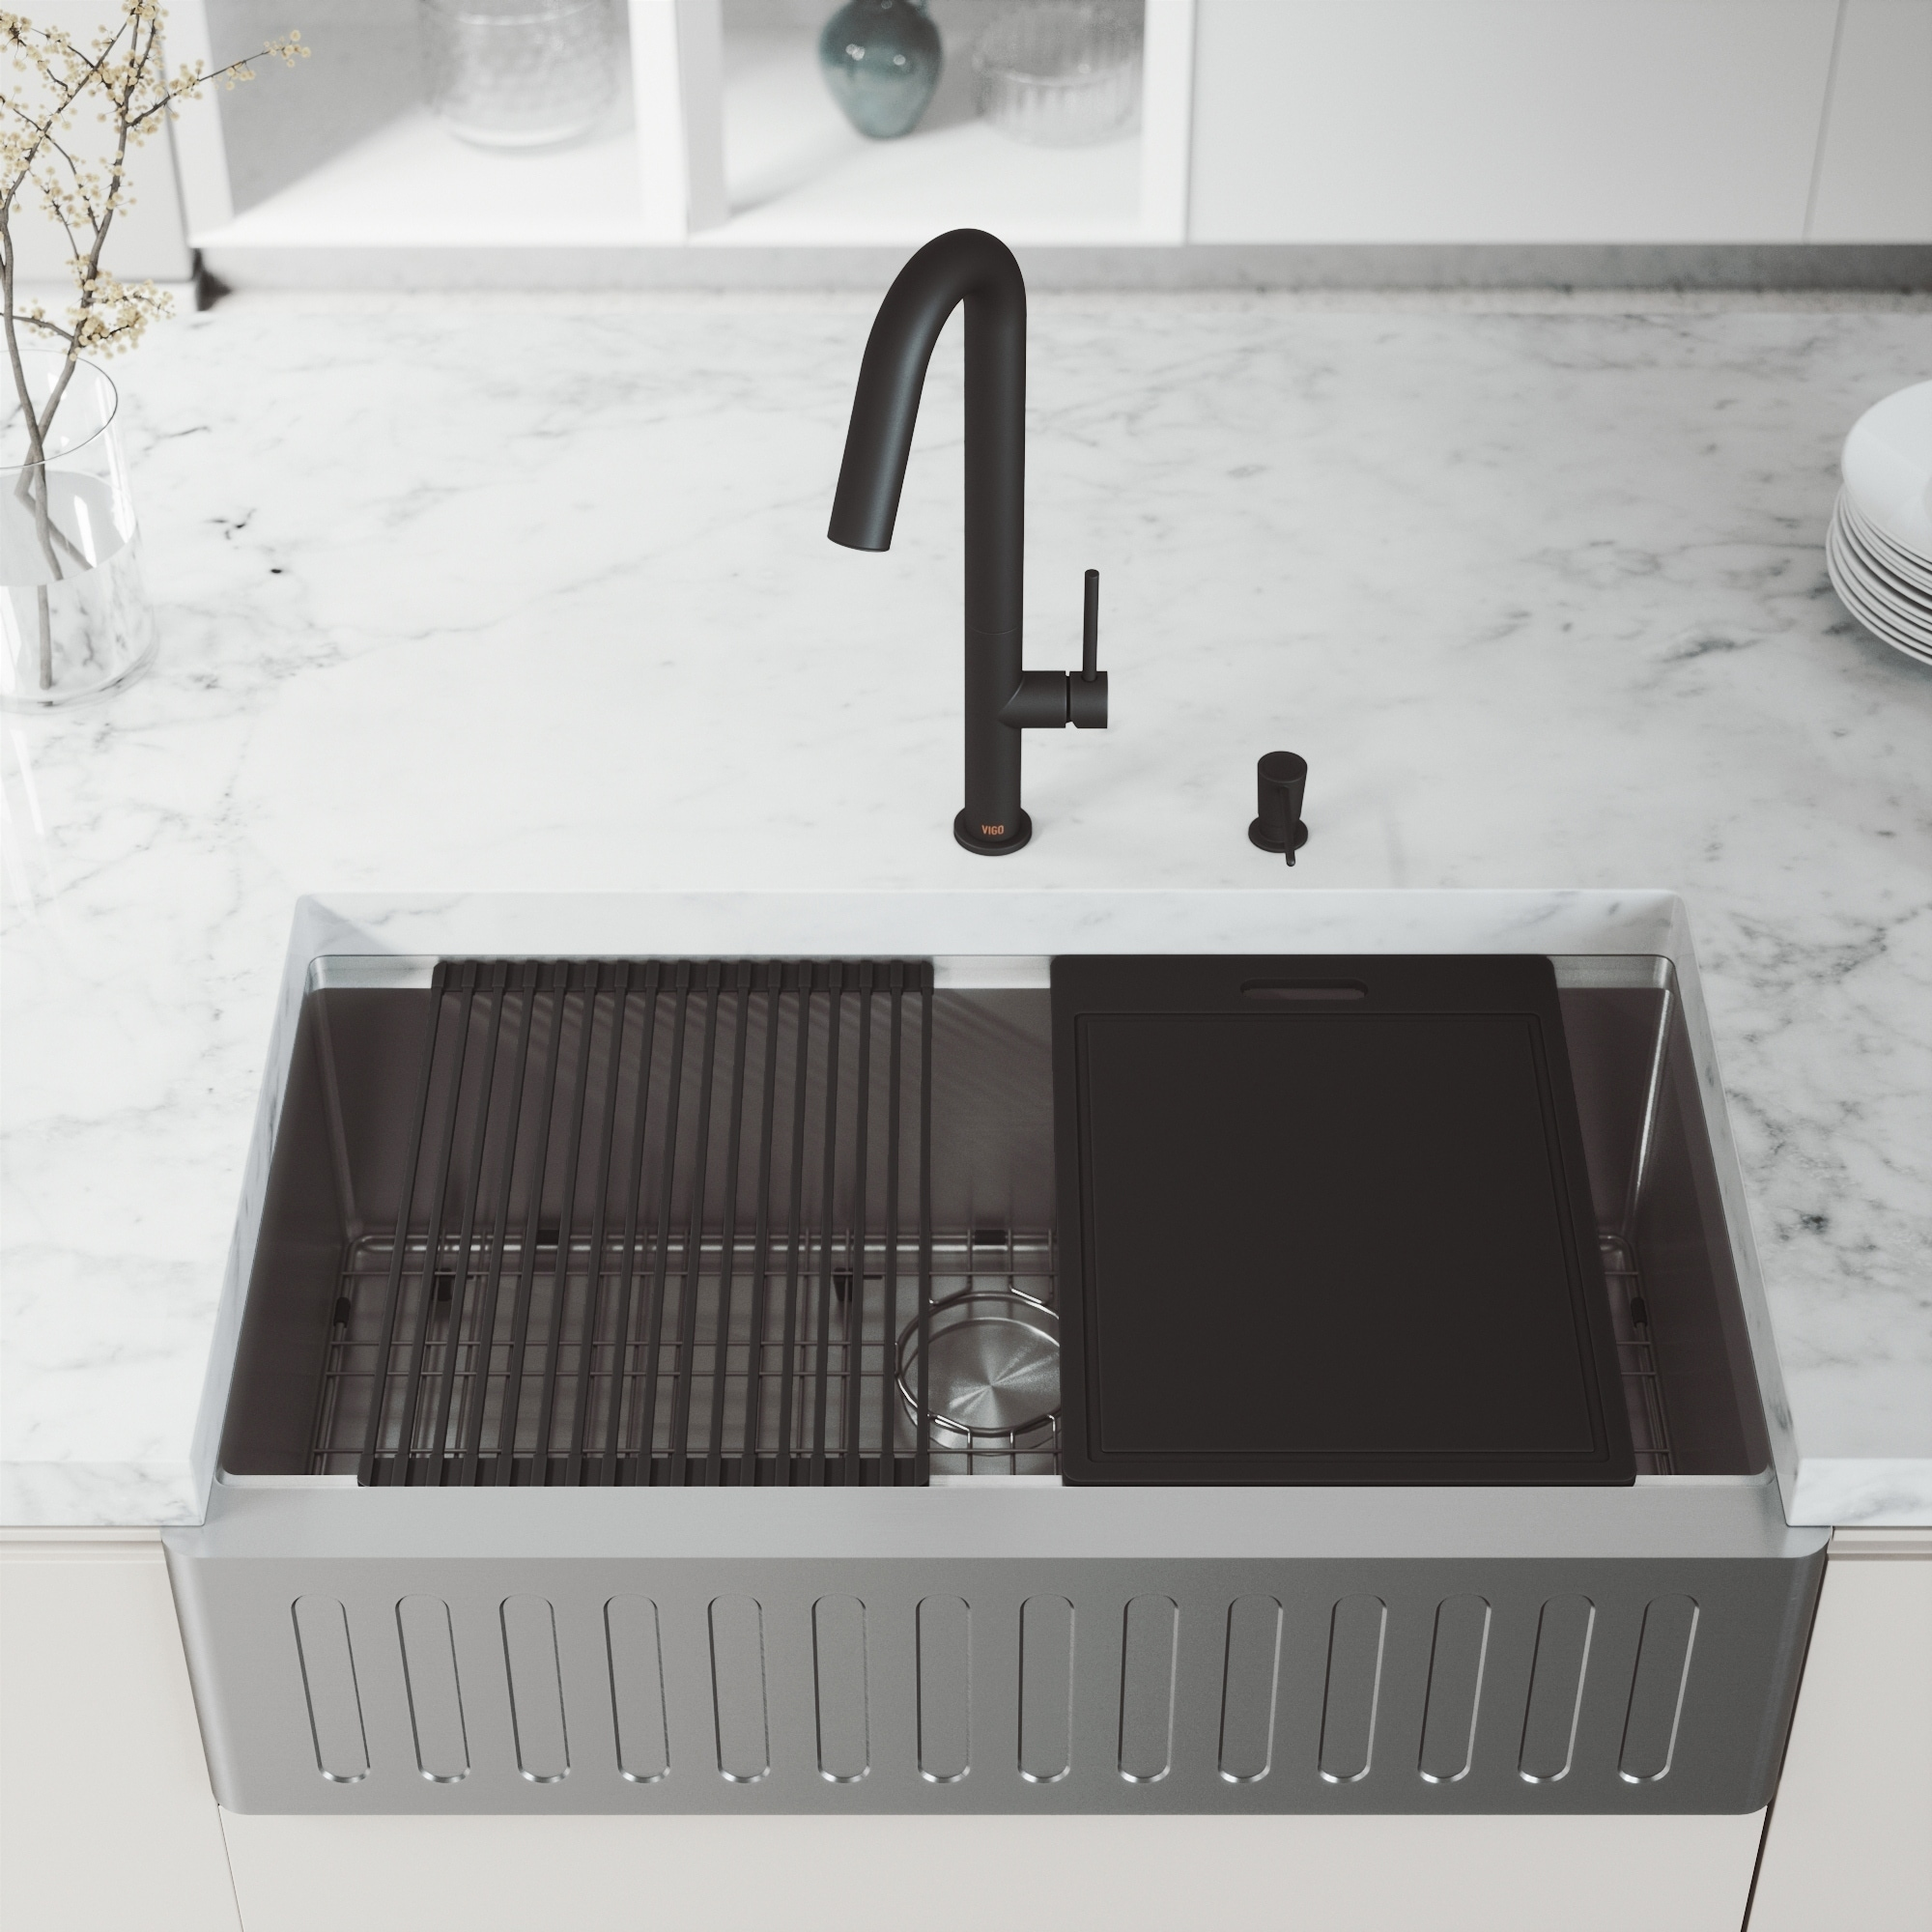 VIGO 36-Inch Oxford Single Bowl Slotted Apron Front Stainless Steel  Farmhouse Kitchen Sink with Accessories